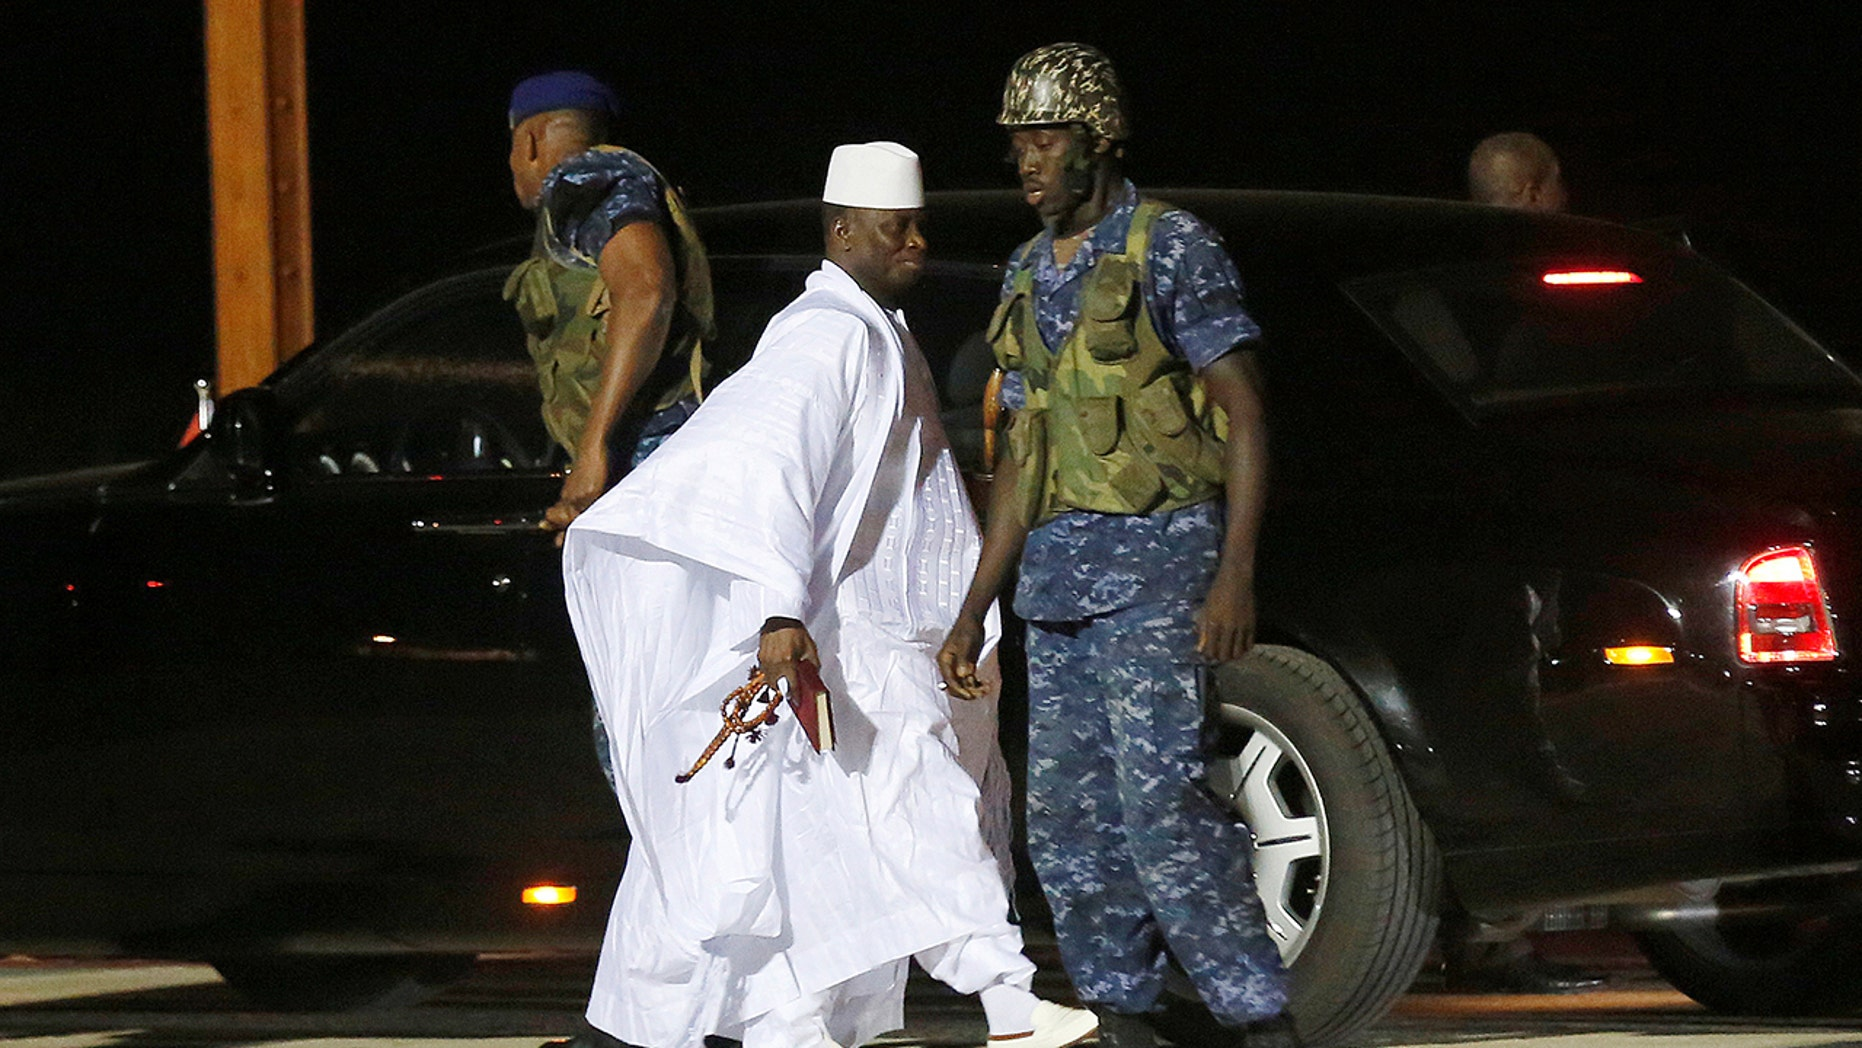 Jammeh has long been accused of human rights abuses during his rule that began after a bloodless coup in 1994. He lost December 2016 elections to now-President Adama Barrow and, after a political standoff, fled into exile to Equatorial Guinea in January 2017.